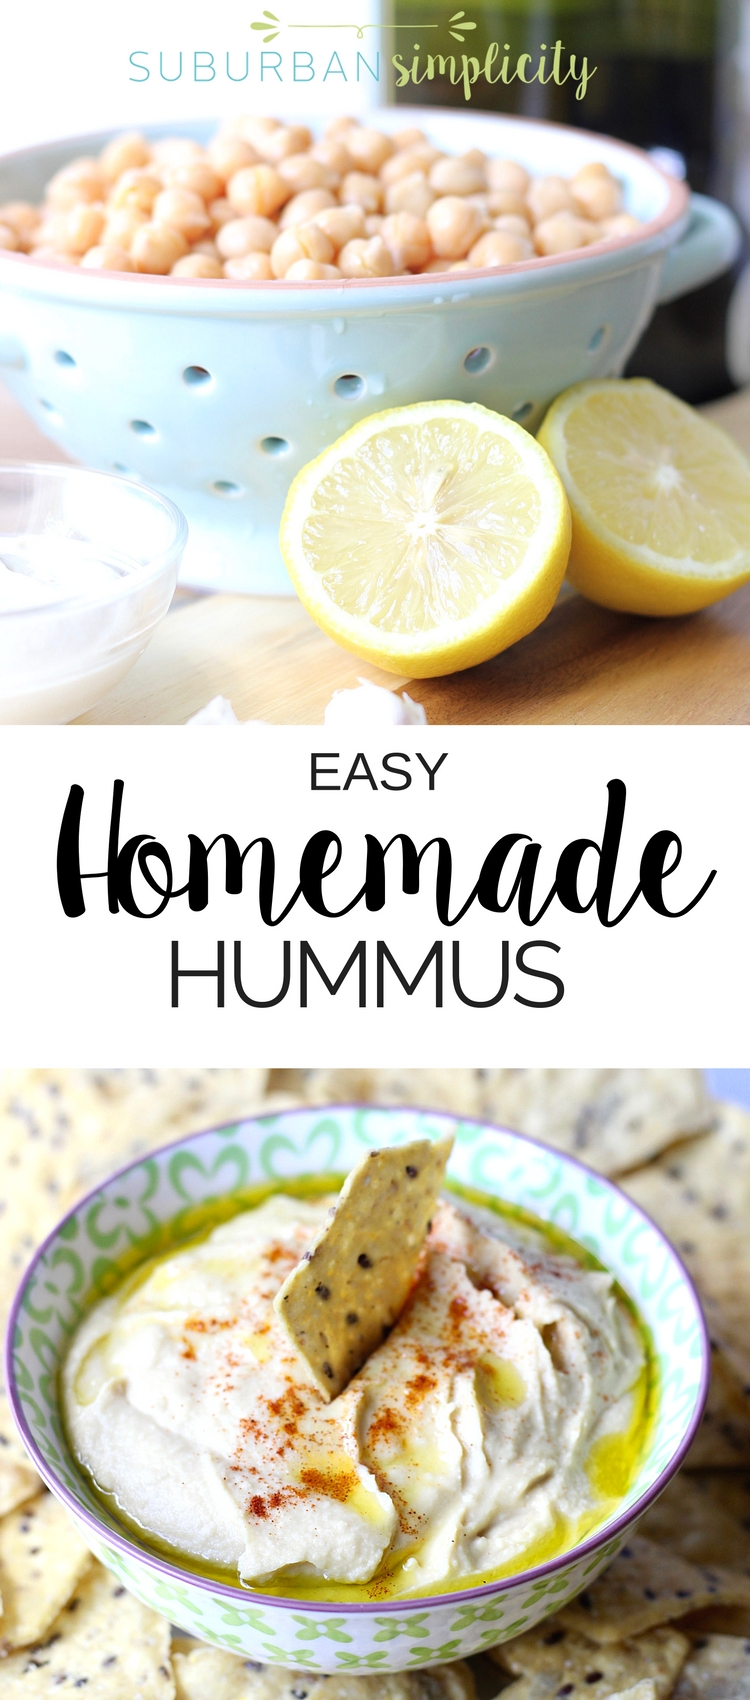 This 5-minute Homemade Hummus Recipe is even better than store bought! It's fresh, creamy and a healthy, gluten free snack idea that's good anytime! Try it and see how easy it is!  Video tutorial. #easyrecipe #hummus